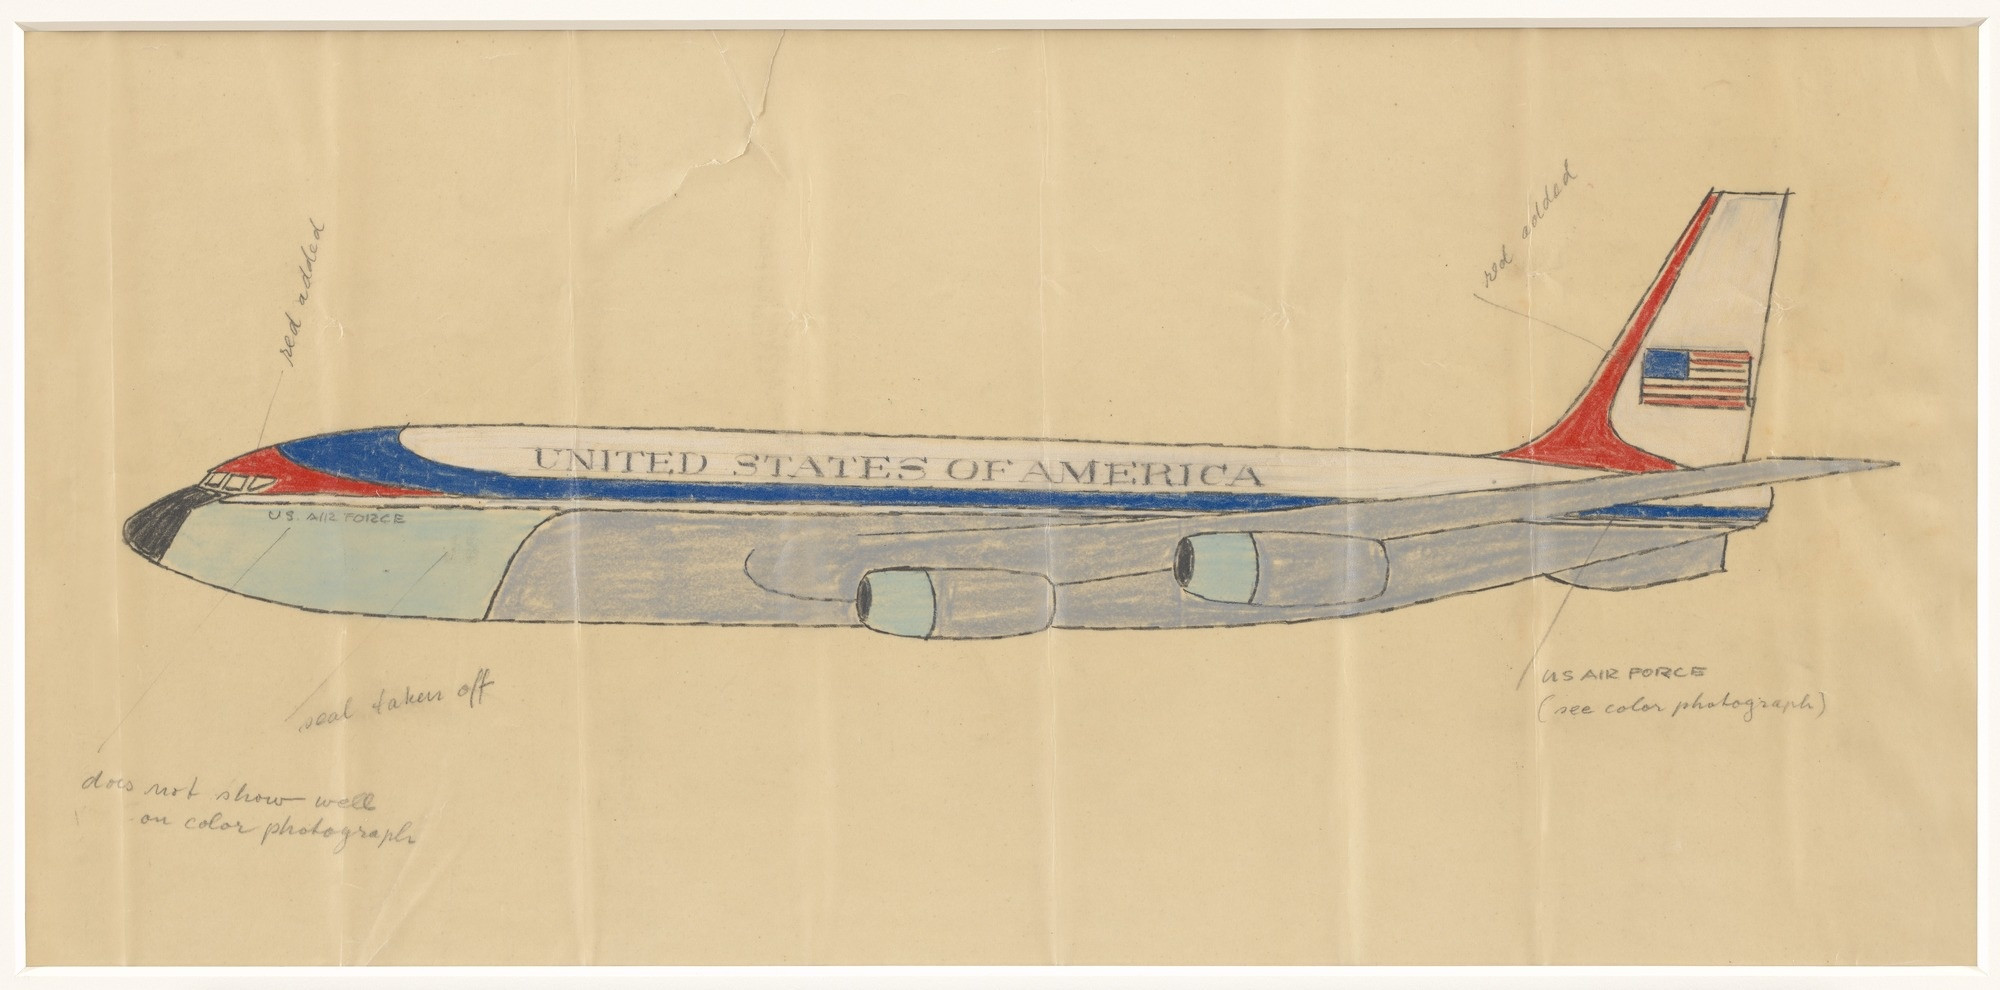 Raymond Loewy. Livery Design for Air Force One. 1962. Gouache, colored pencil, graphite on paper, 10 1/2 × 22″ (26.7 × 55.9 cm). Gift of Jo Carole and Ronald S. Lauder